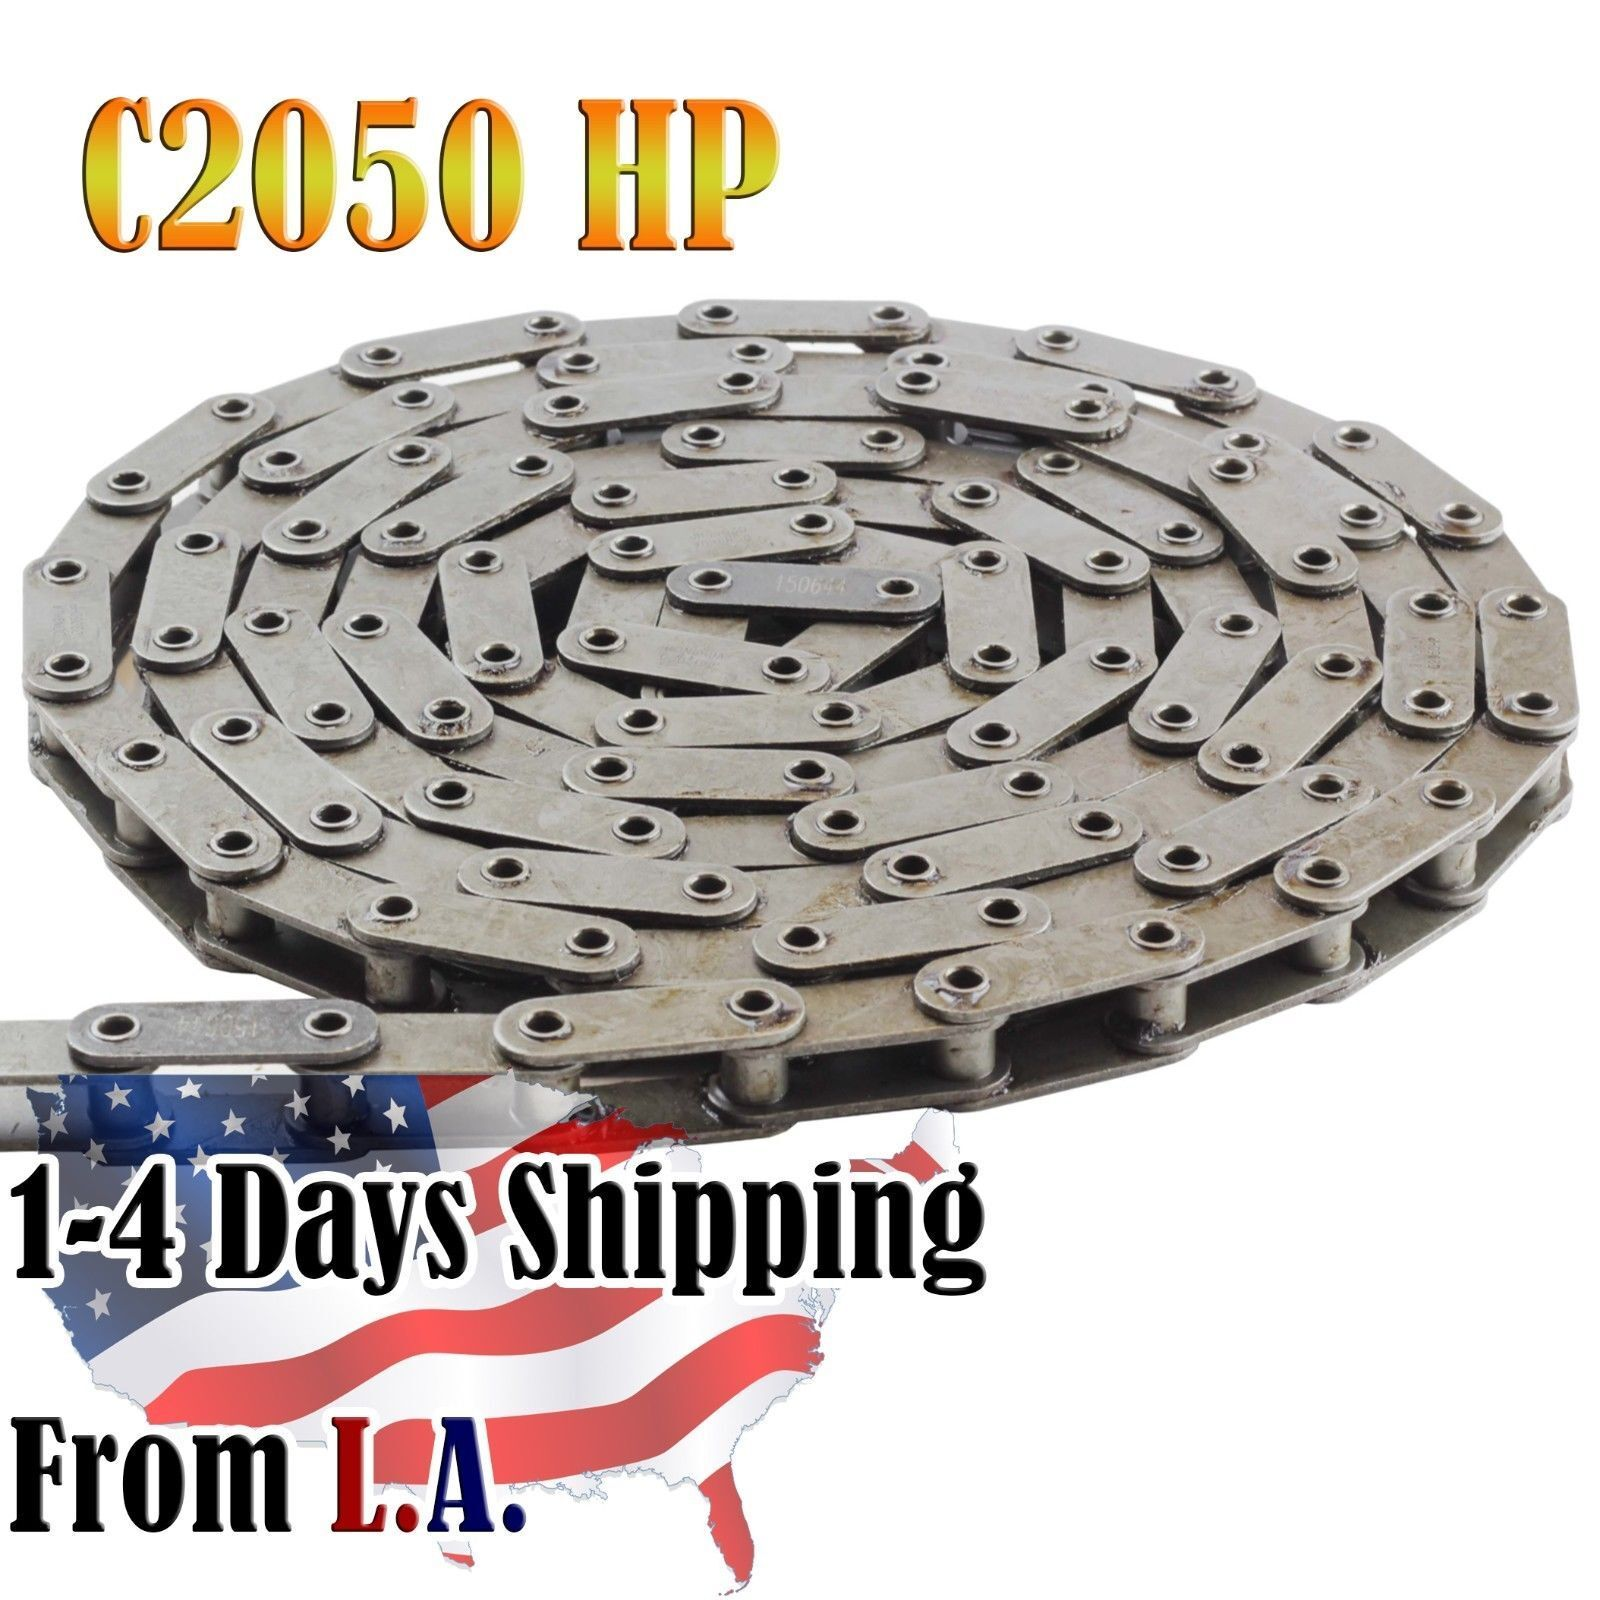 C2050HP Hollow Pin Conveyor Roller Chain 10 Feet with 1 Connecting Link